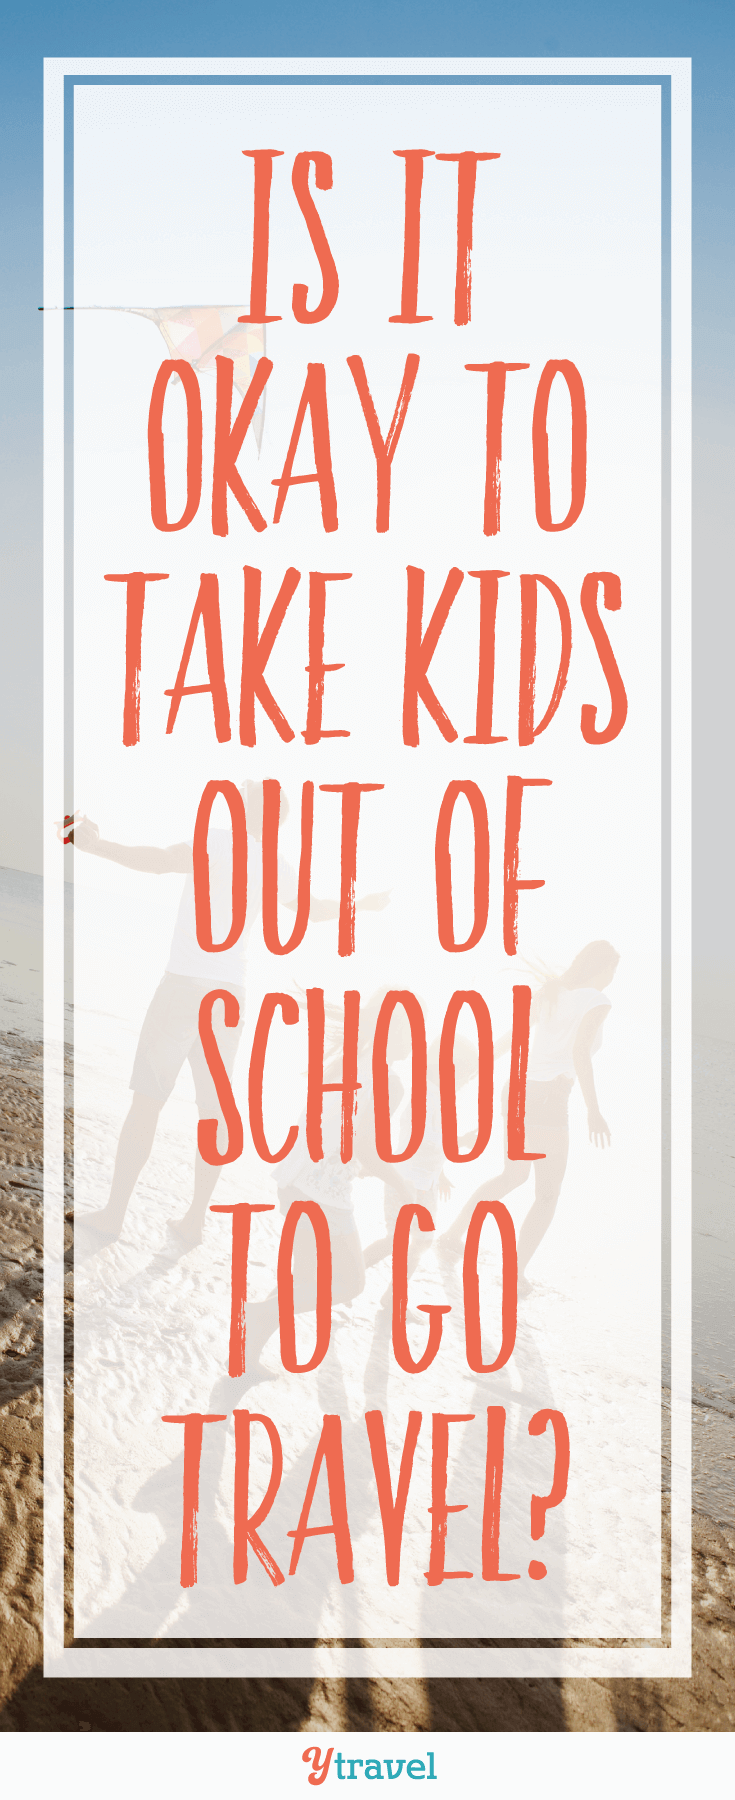 Is It Okay To Take Kids Out Of School To Go Travel?